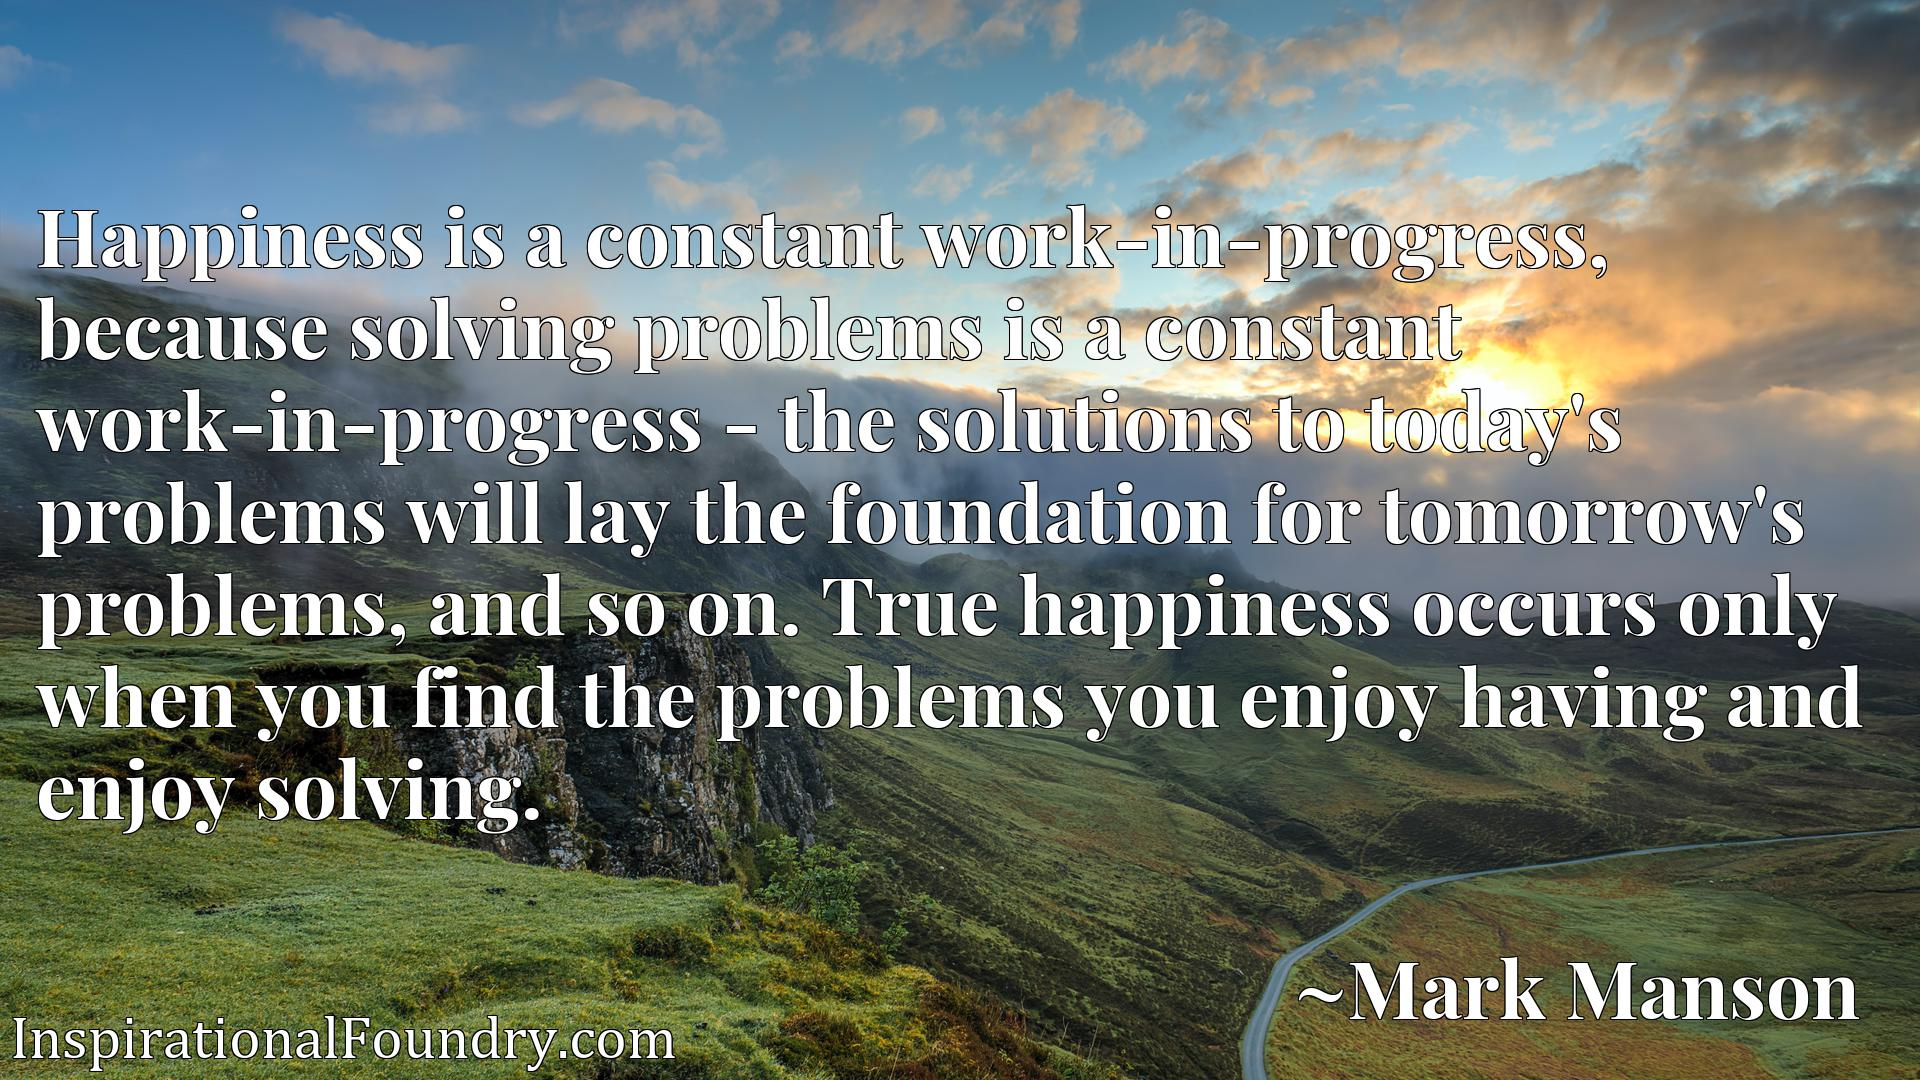 Happiness is a constant work-in-progress, because solving problems is a constant work-in-progress - the solutions to today's problems will lay the foundation for tomorrow's problems, and so on. True happiness occurs only when you find the problems you enjoy having and enjoy solving.